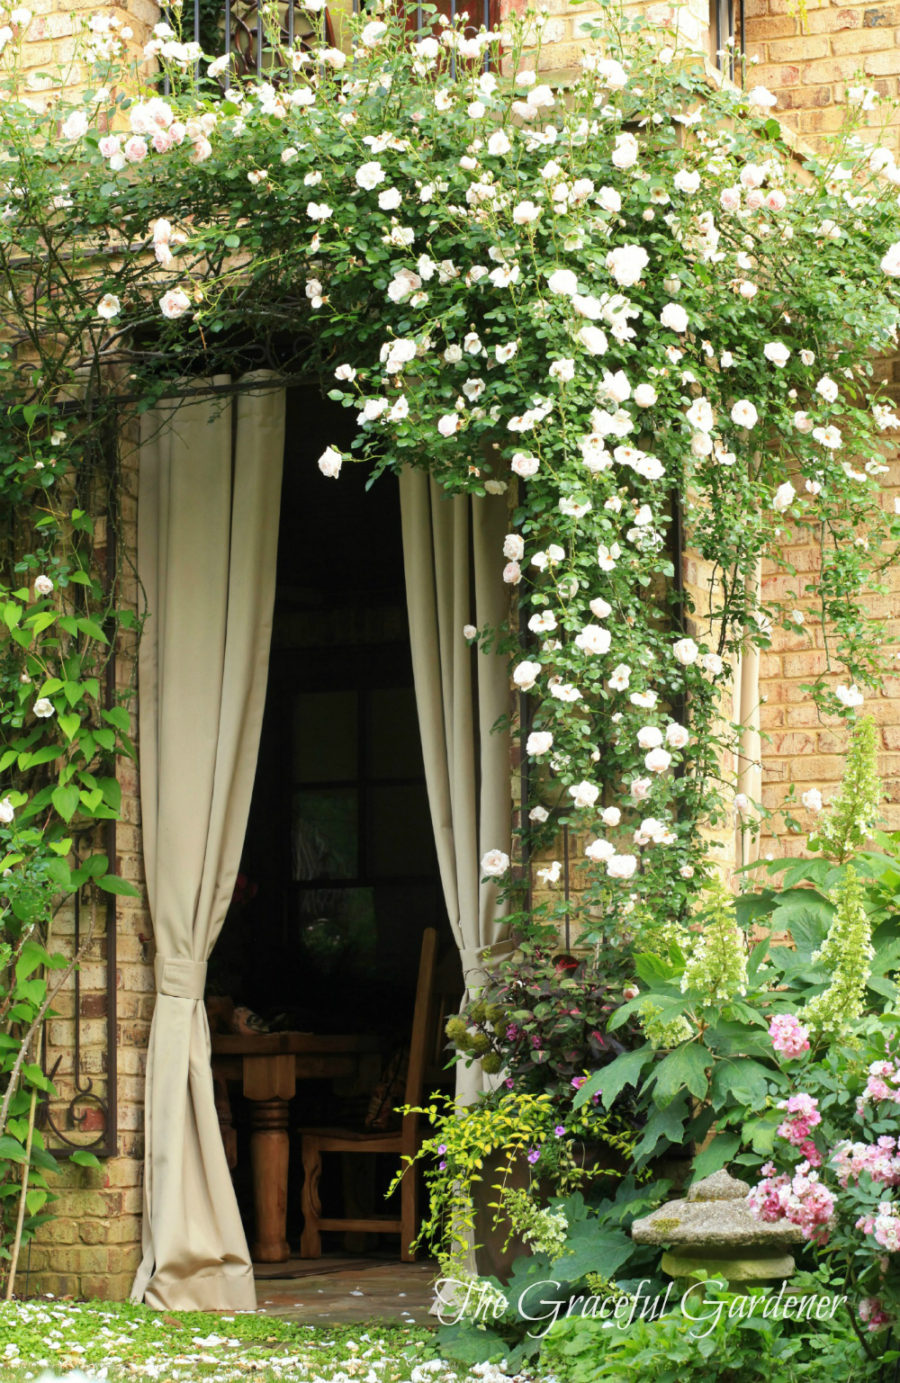 The Graceful Gardener rose arch